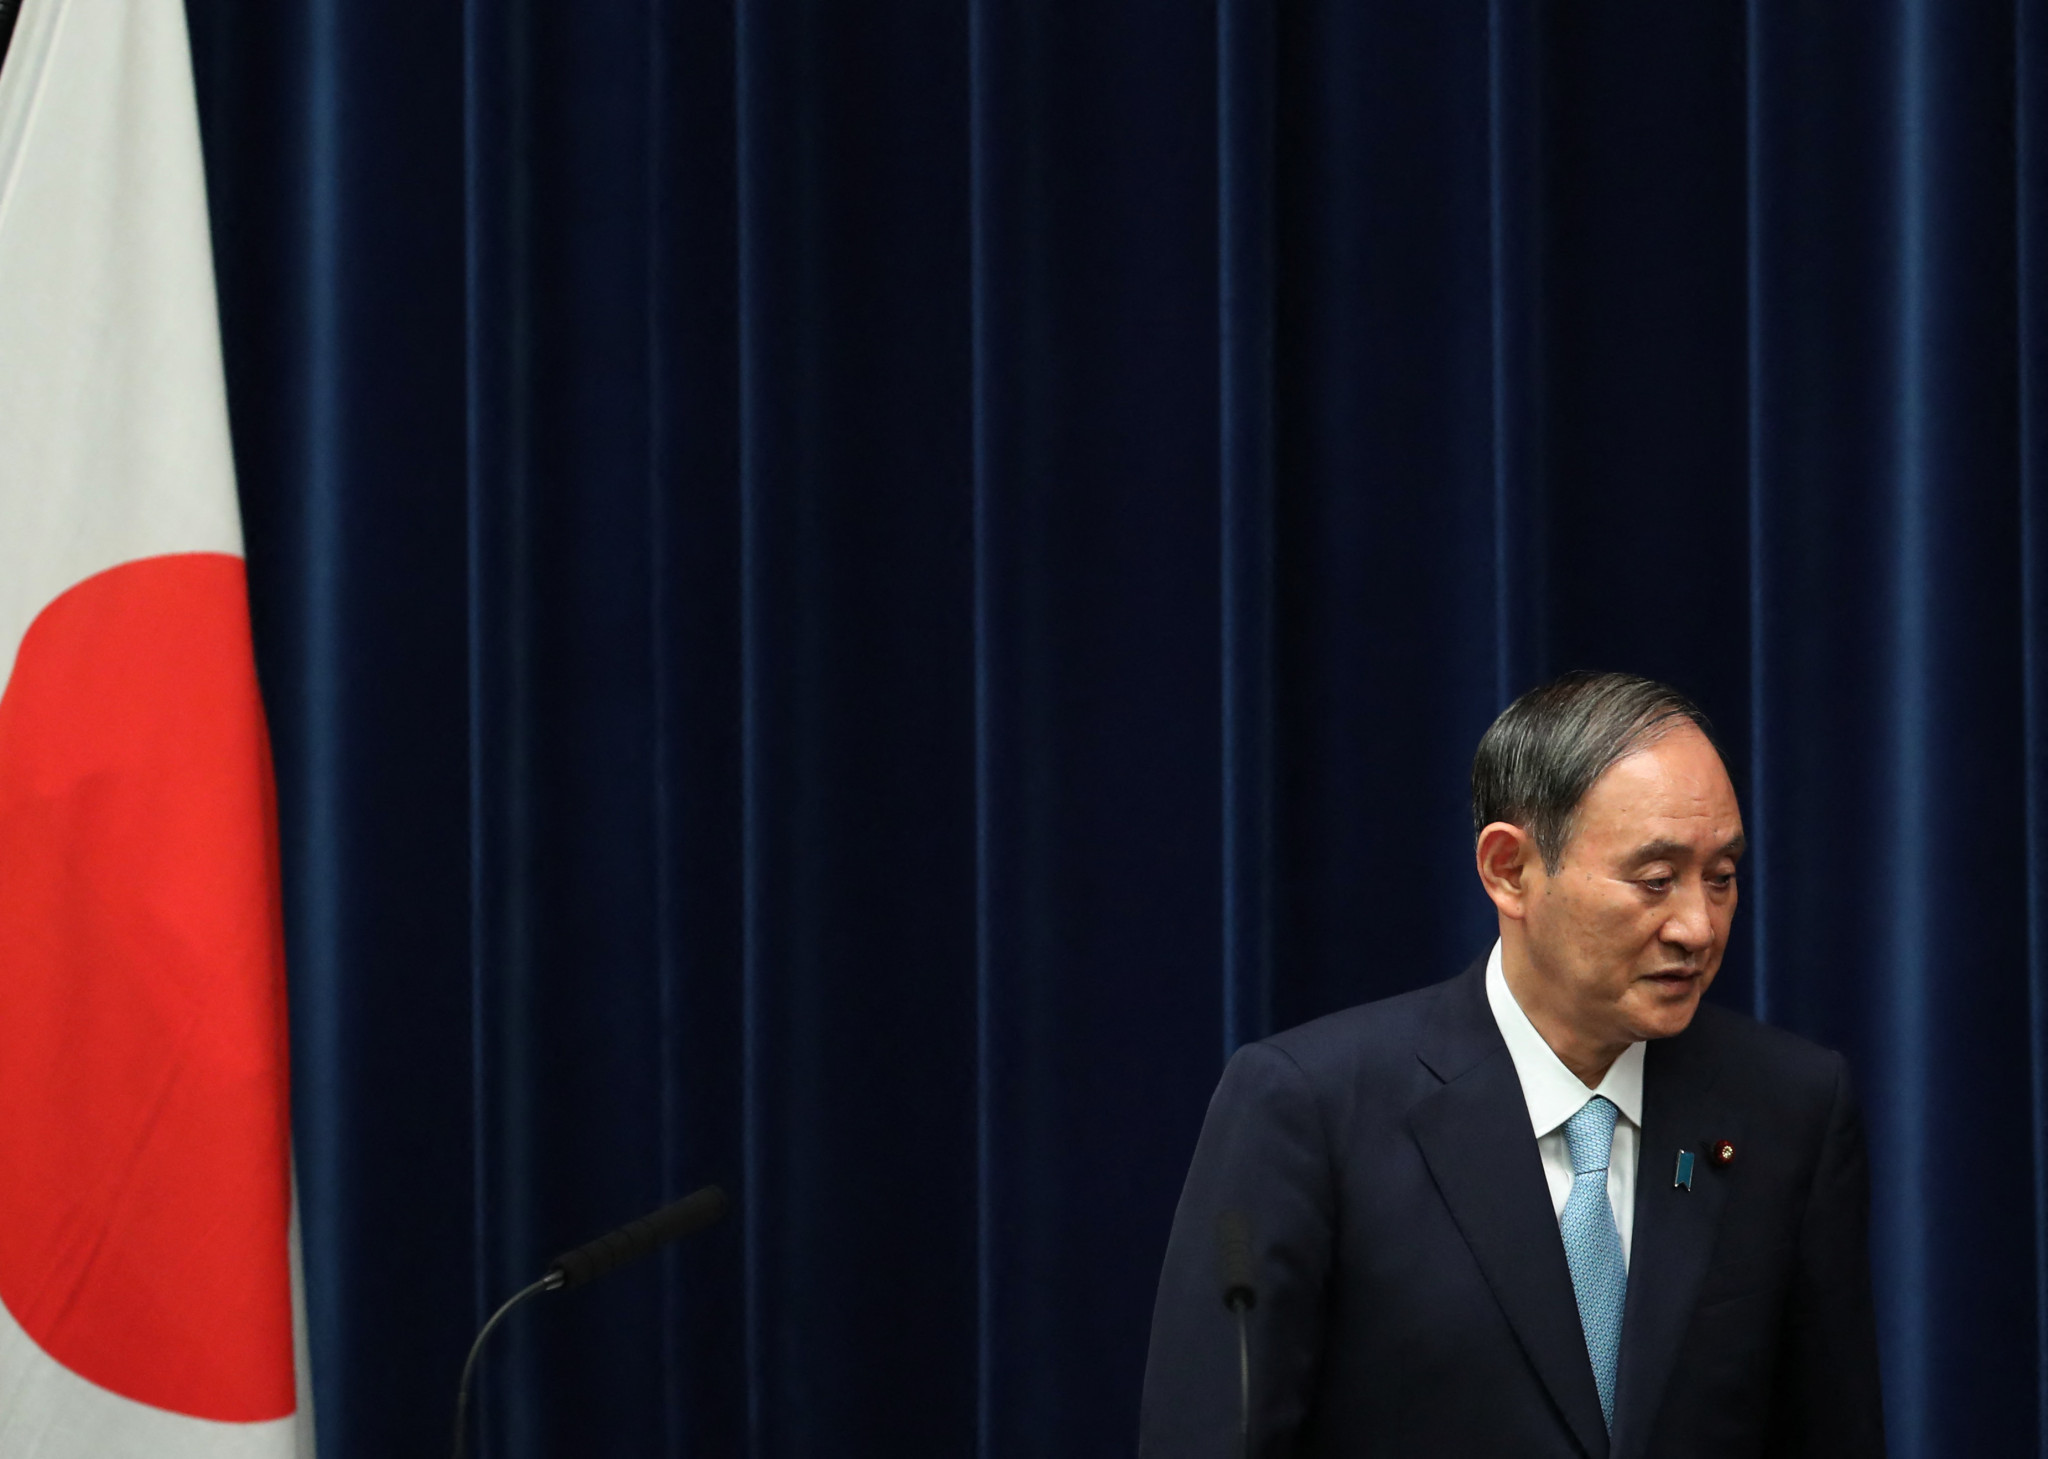 Japan's COVID-19 state of emergency set to be lifted at month's end